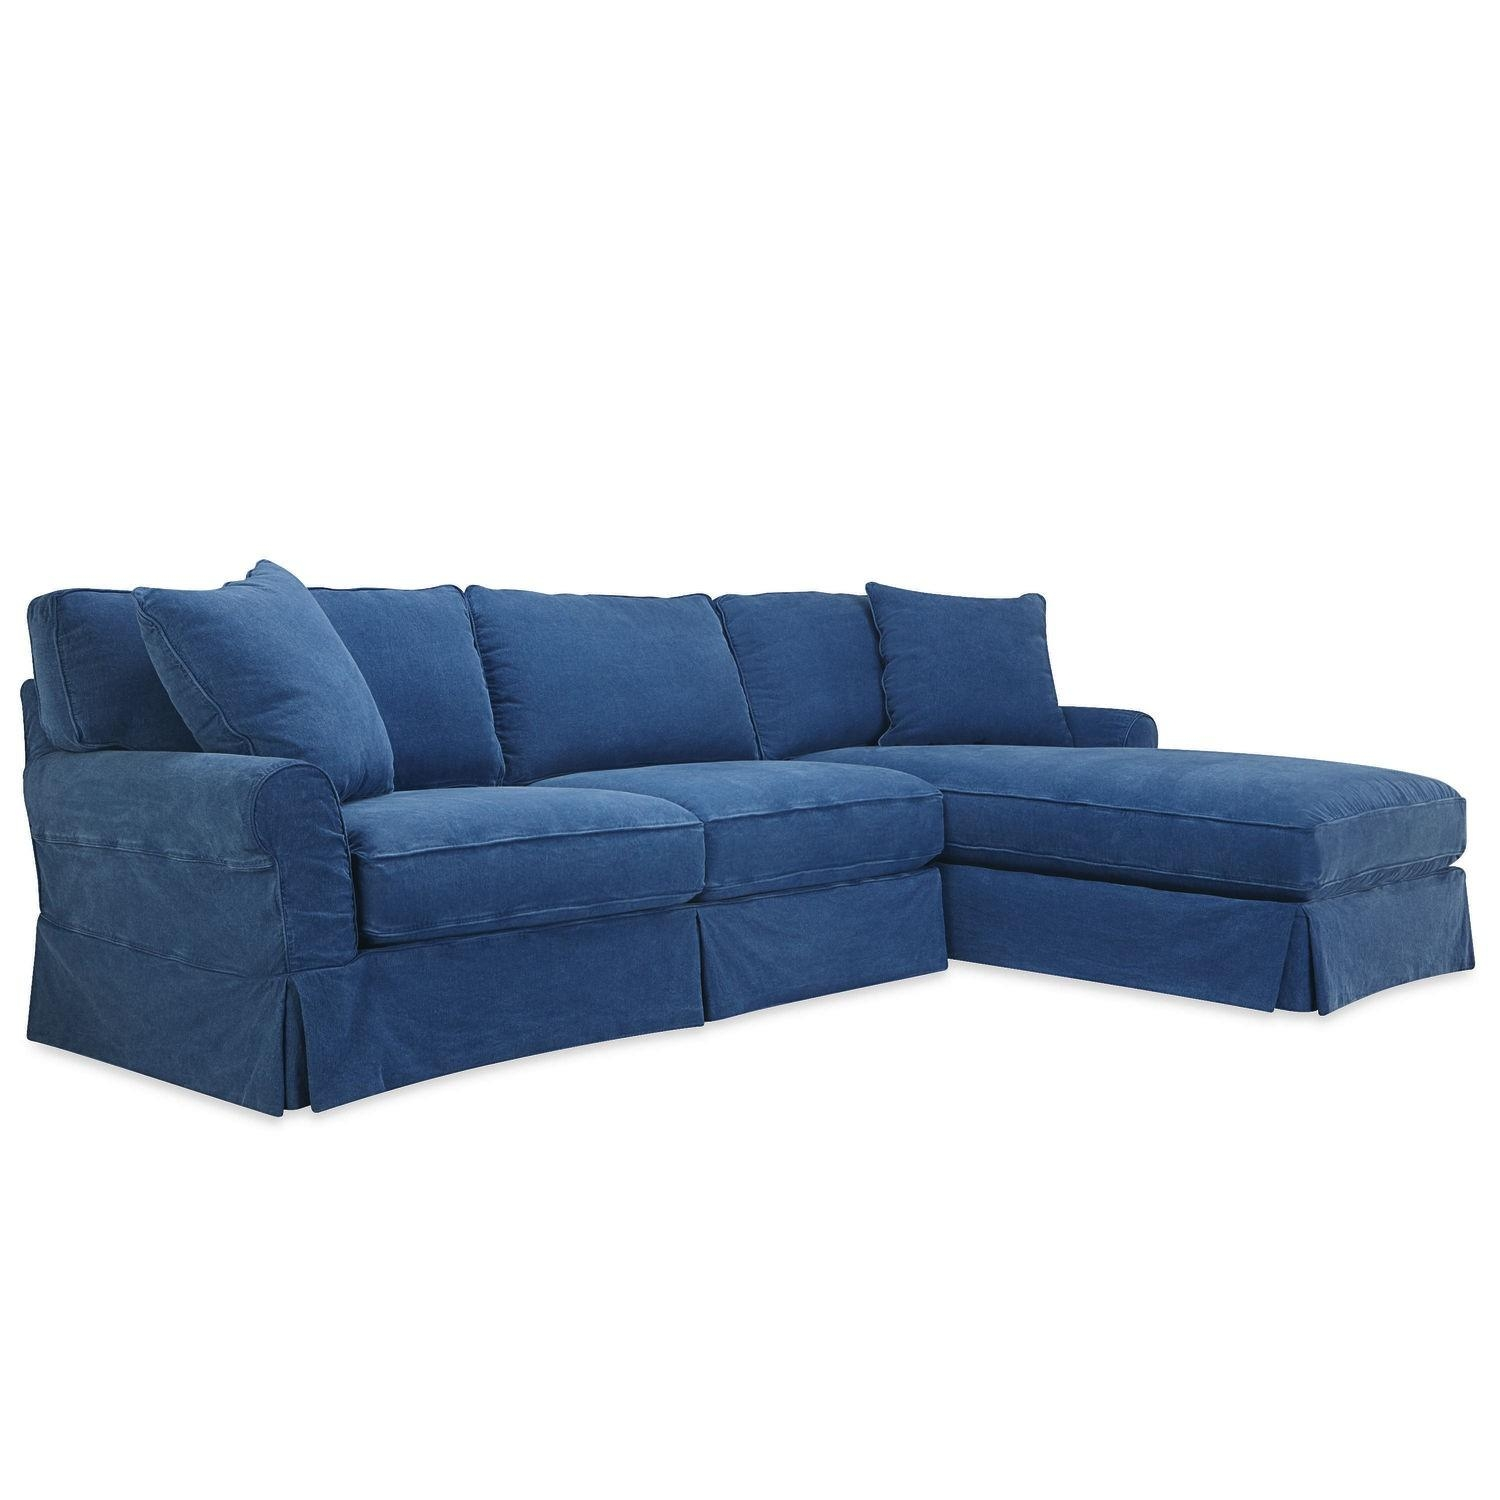 American Furniture | Nantucket Chaise Sectional | Lee Industries For Lee Industries Sectional Sofa (Image 4 of 20)